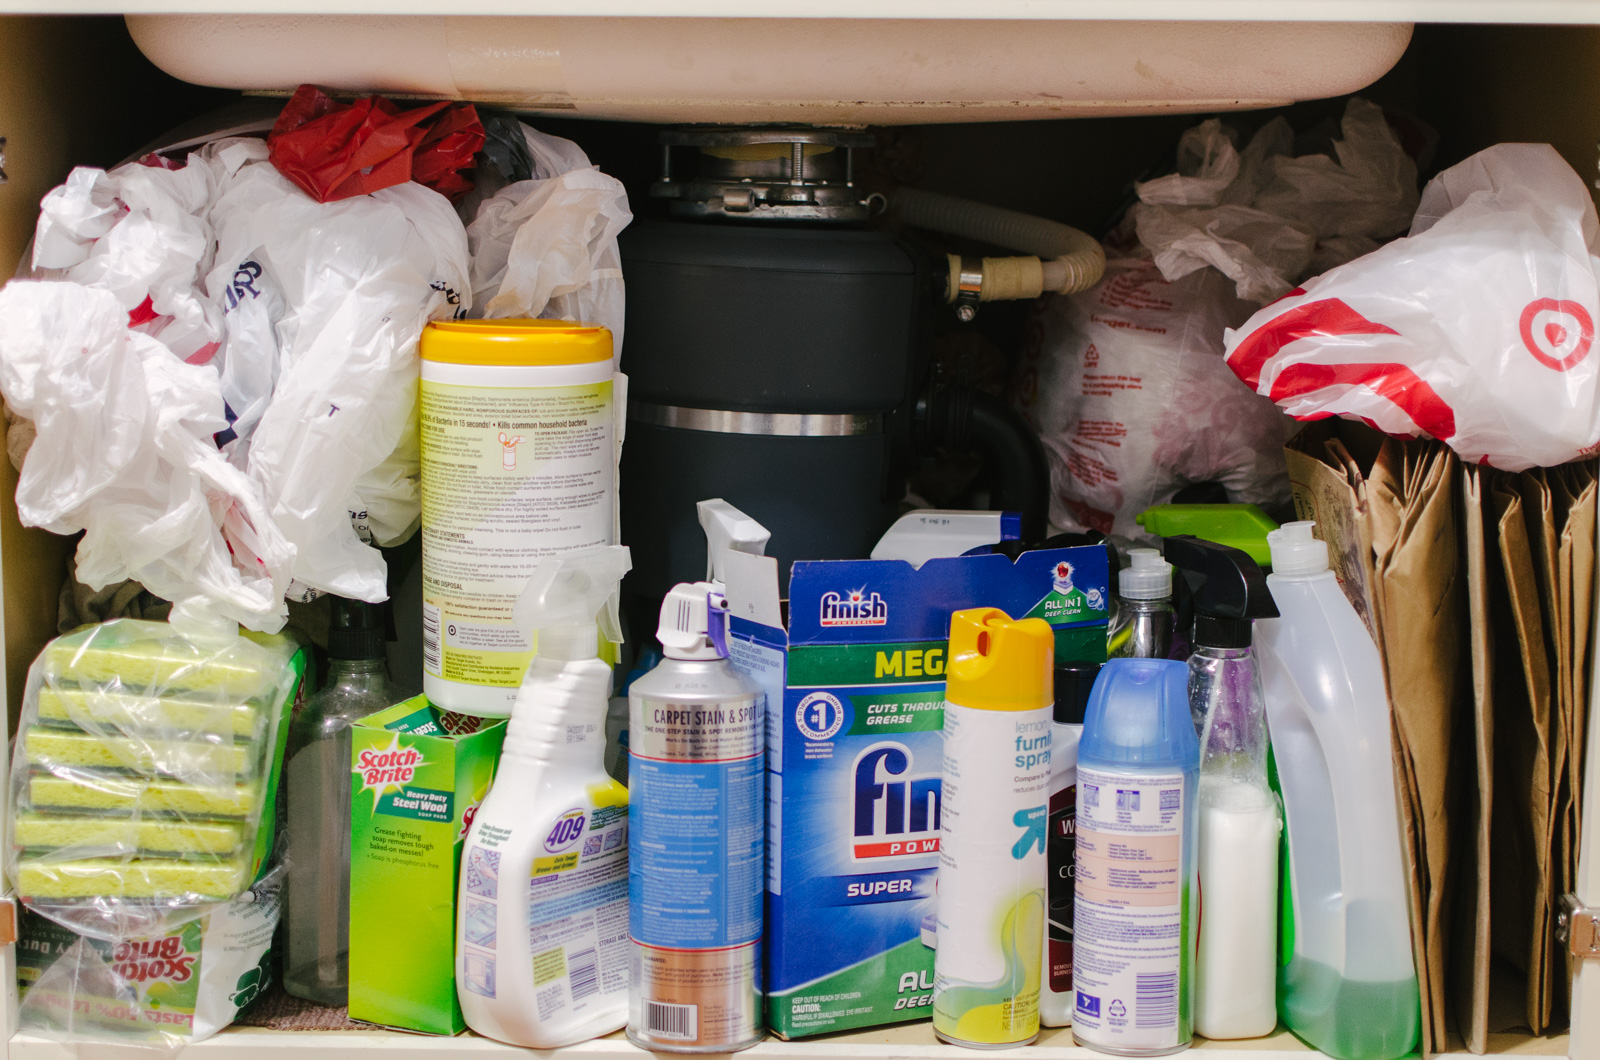 under the sink cabinet organization - how to organize under the kitchen sink. Come see how this messy before was transformed for only $5! | bylaurenm.com